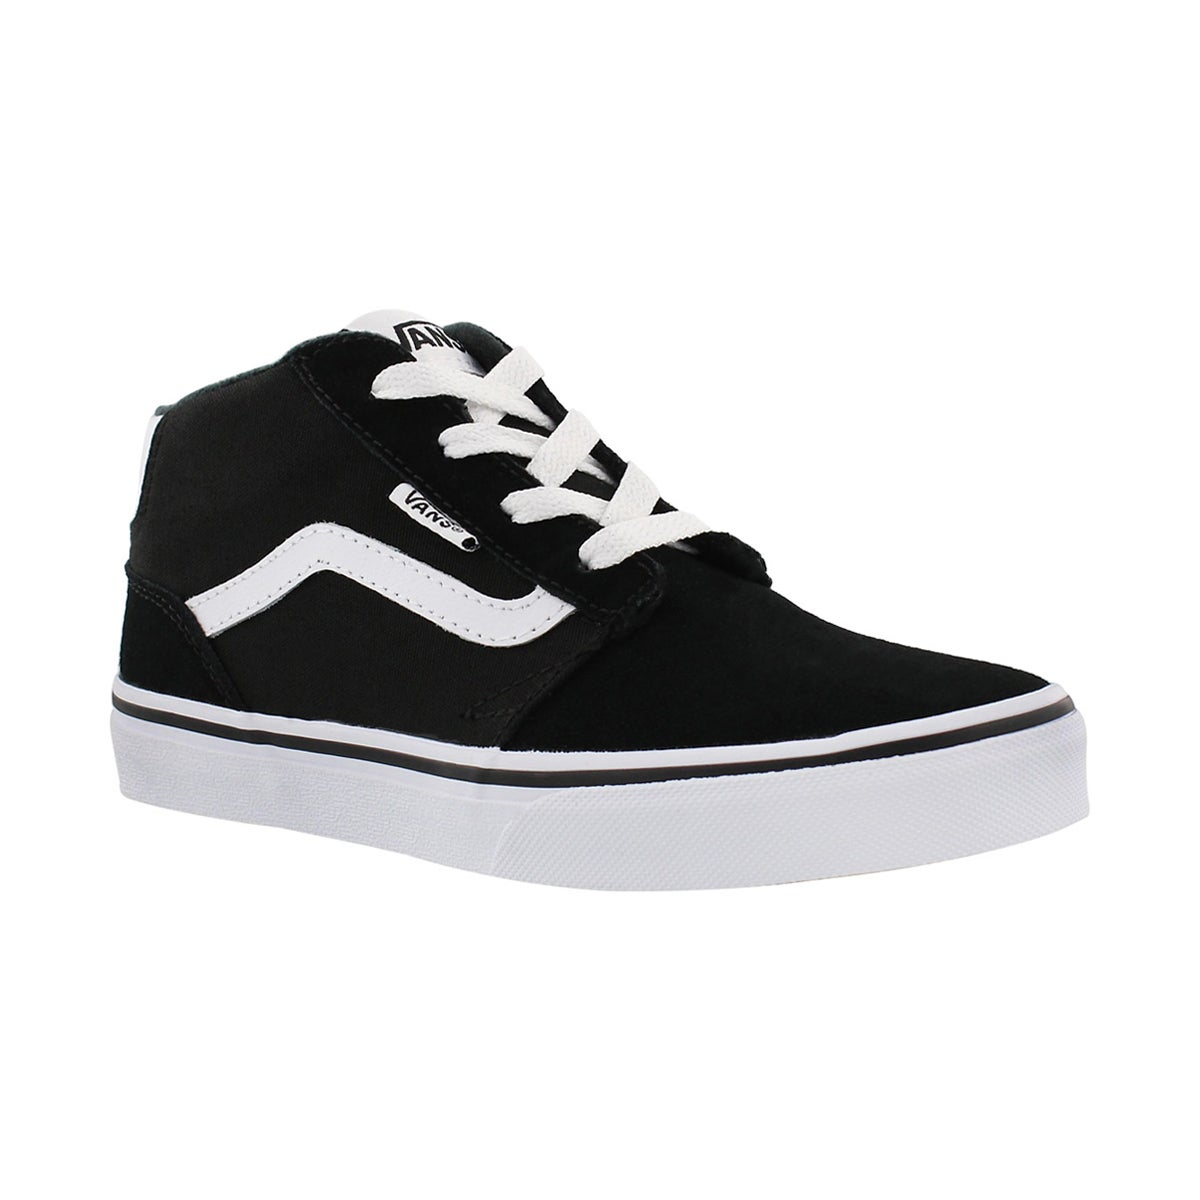 Boys' CHAPMAN MID black/white lace up sneakers